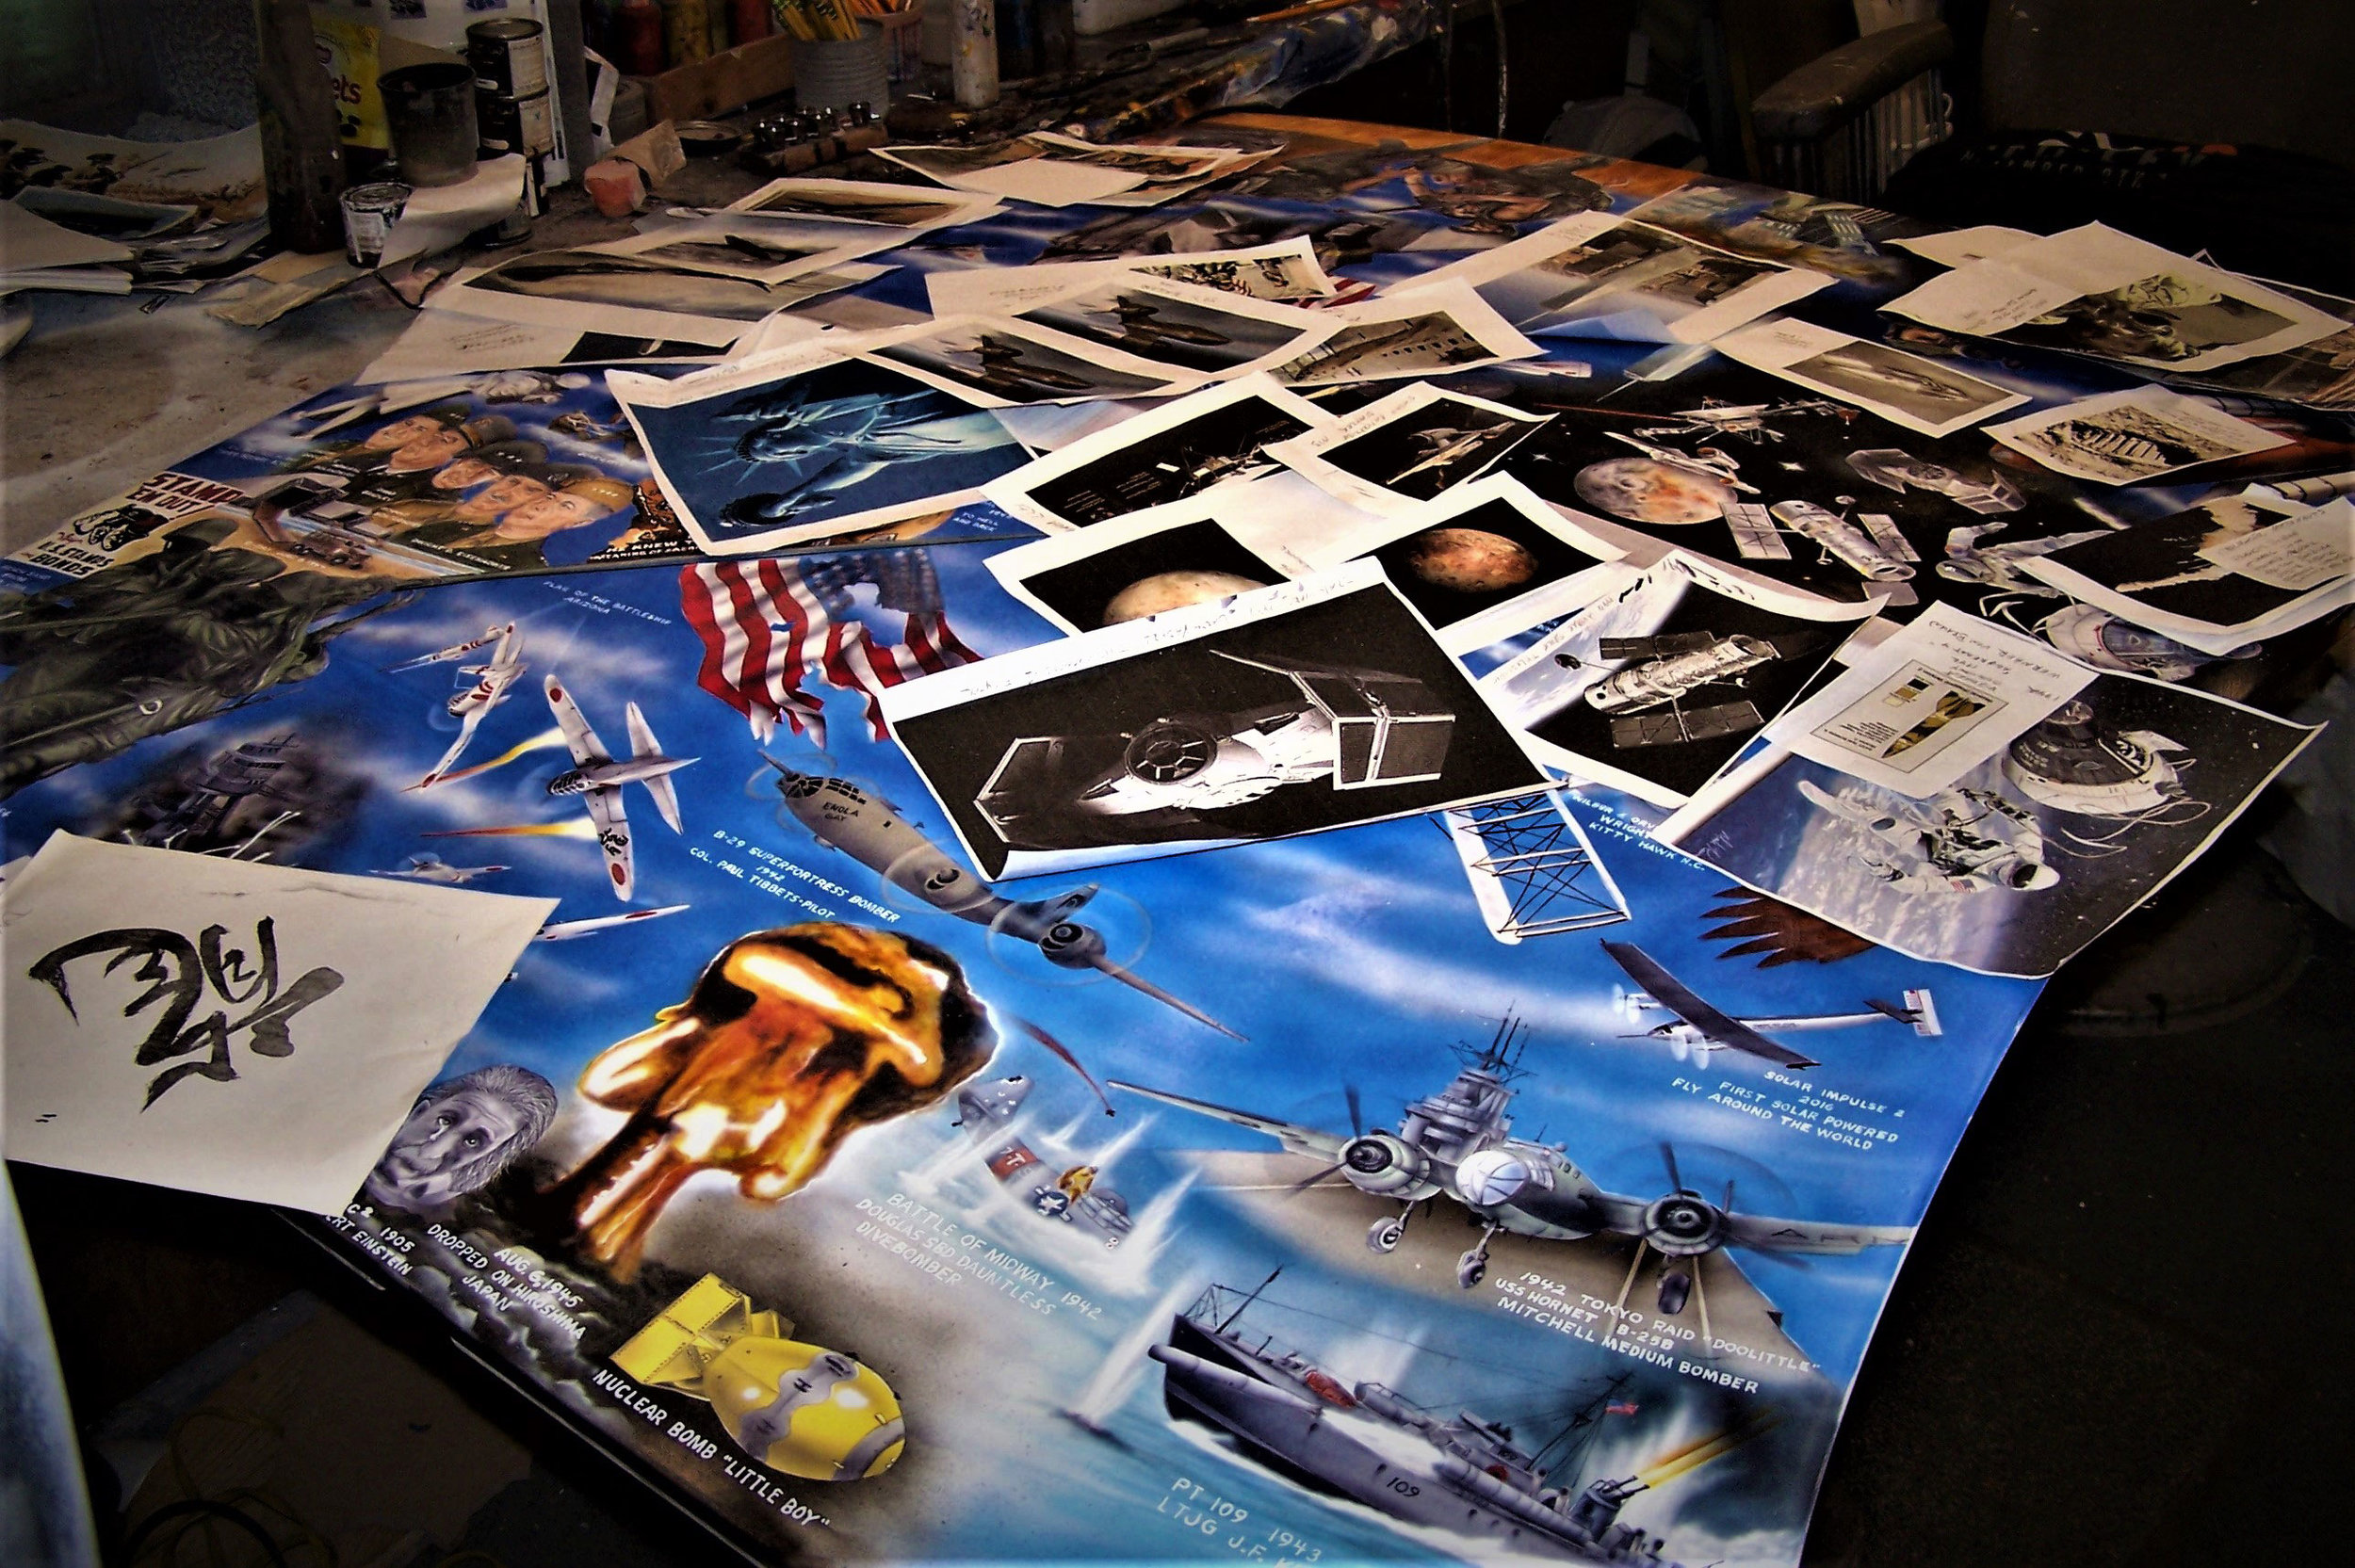 A huge number of photos and research goes into each of the drawings on the El Camino. Here the hood is being worked on with stacks of photos for research.